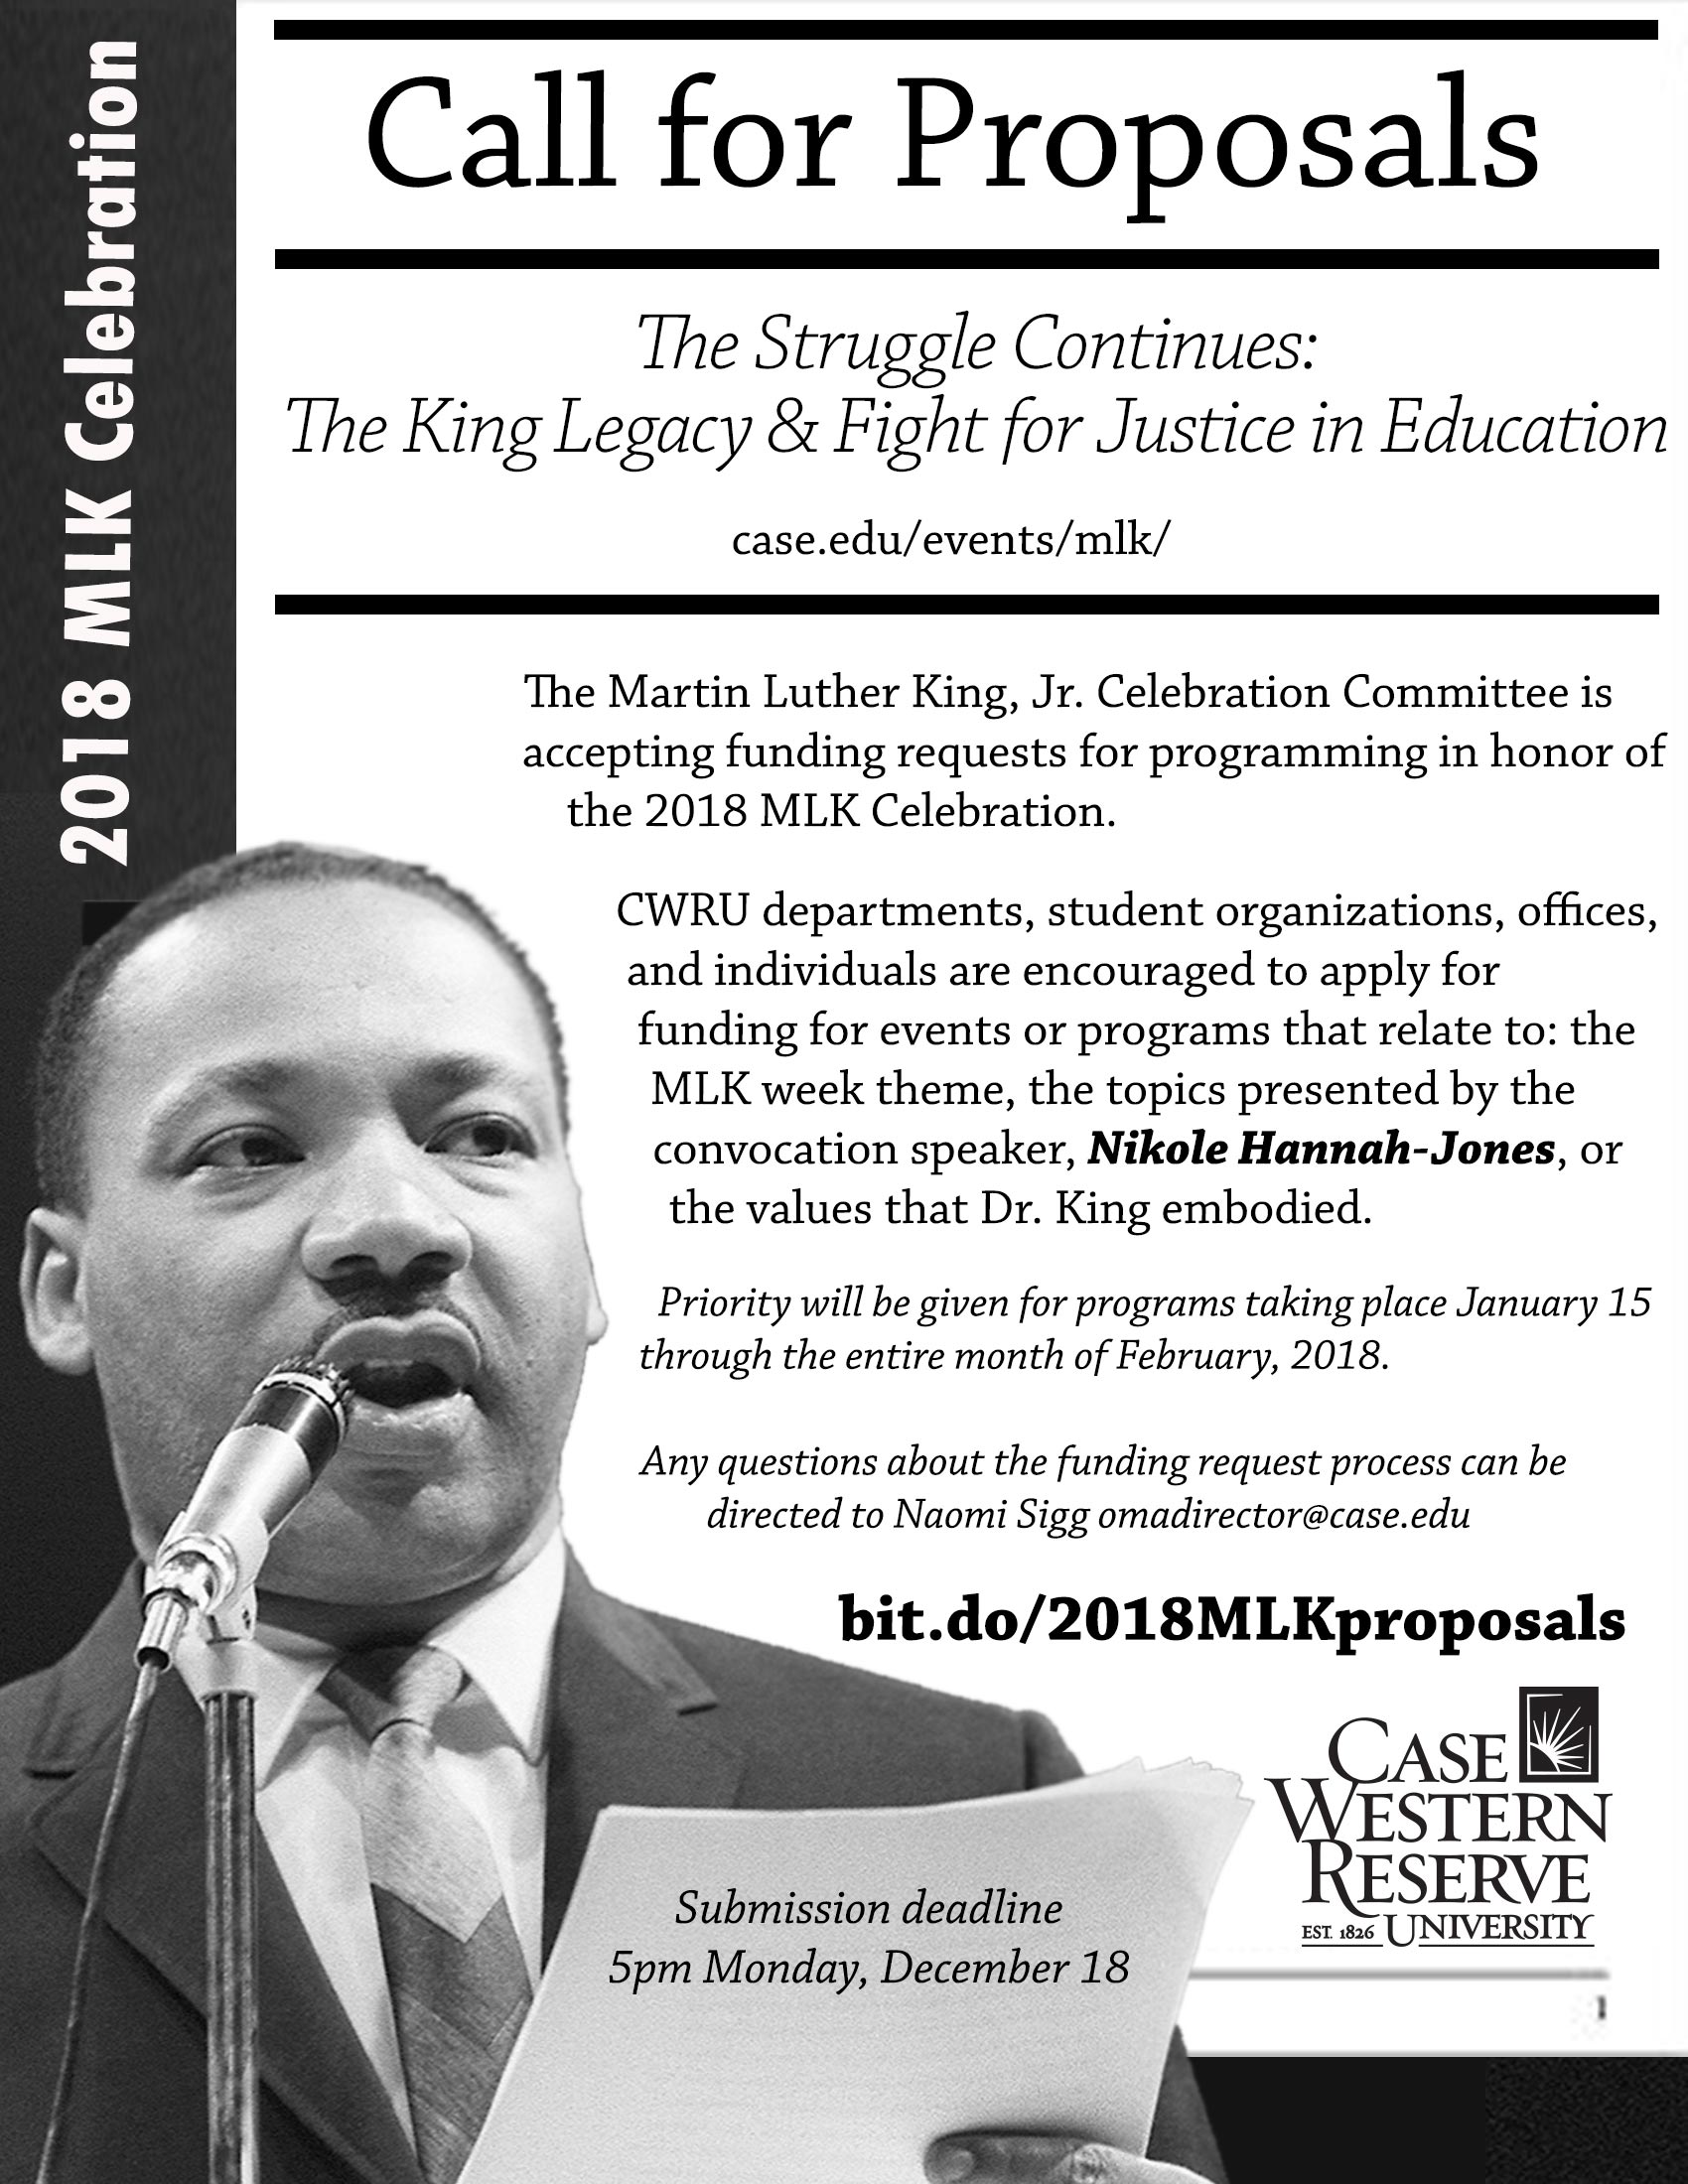 Call for proposals for MLK Celebration Week The Daily